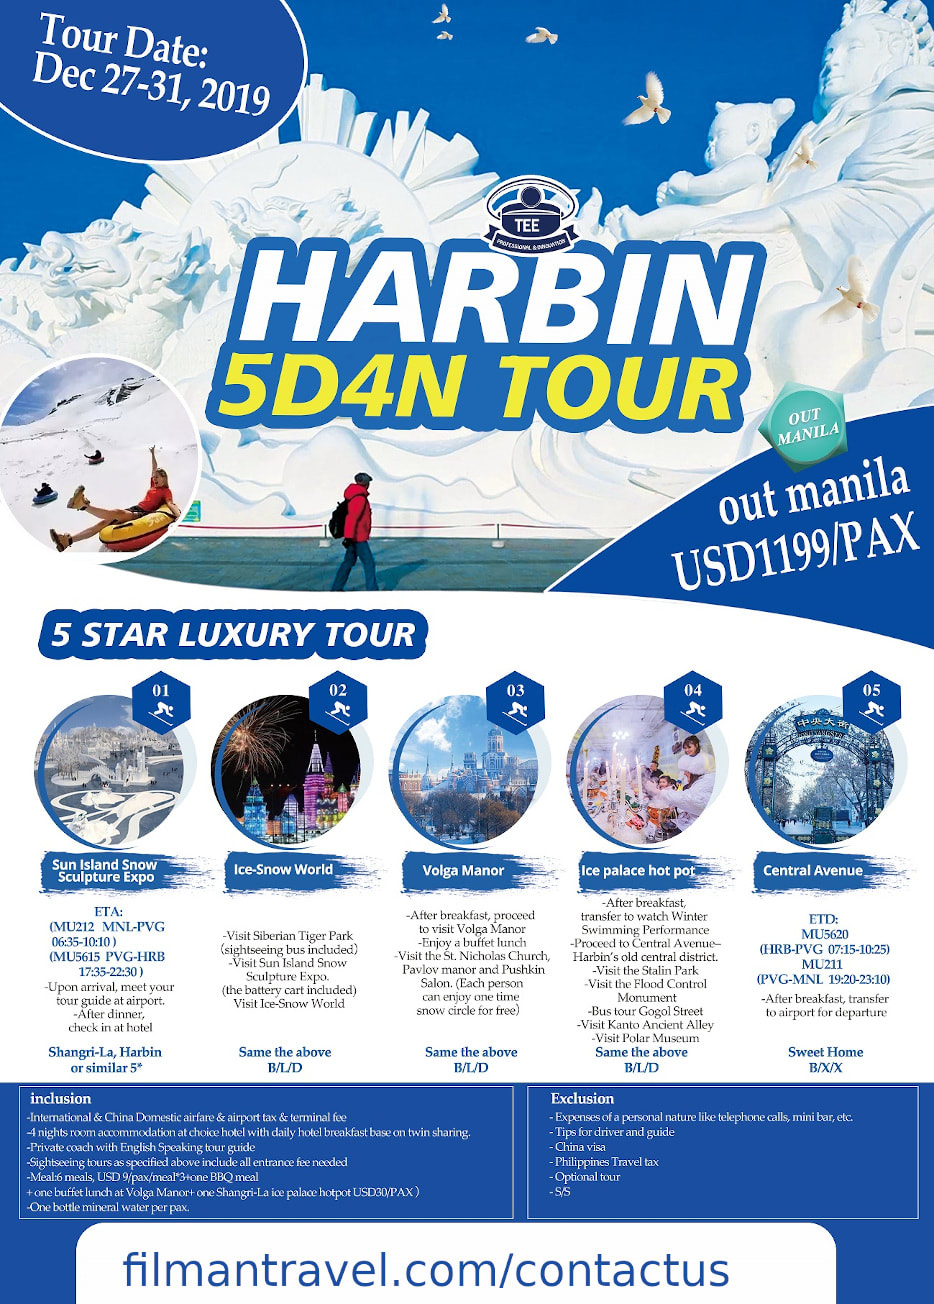 harbin 5 days tour package dec 27 flyer image